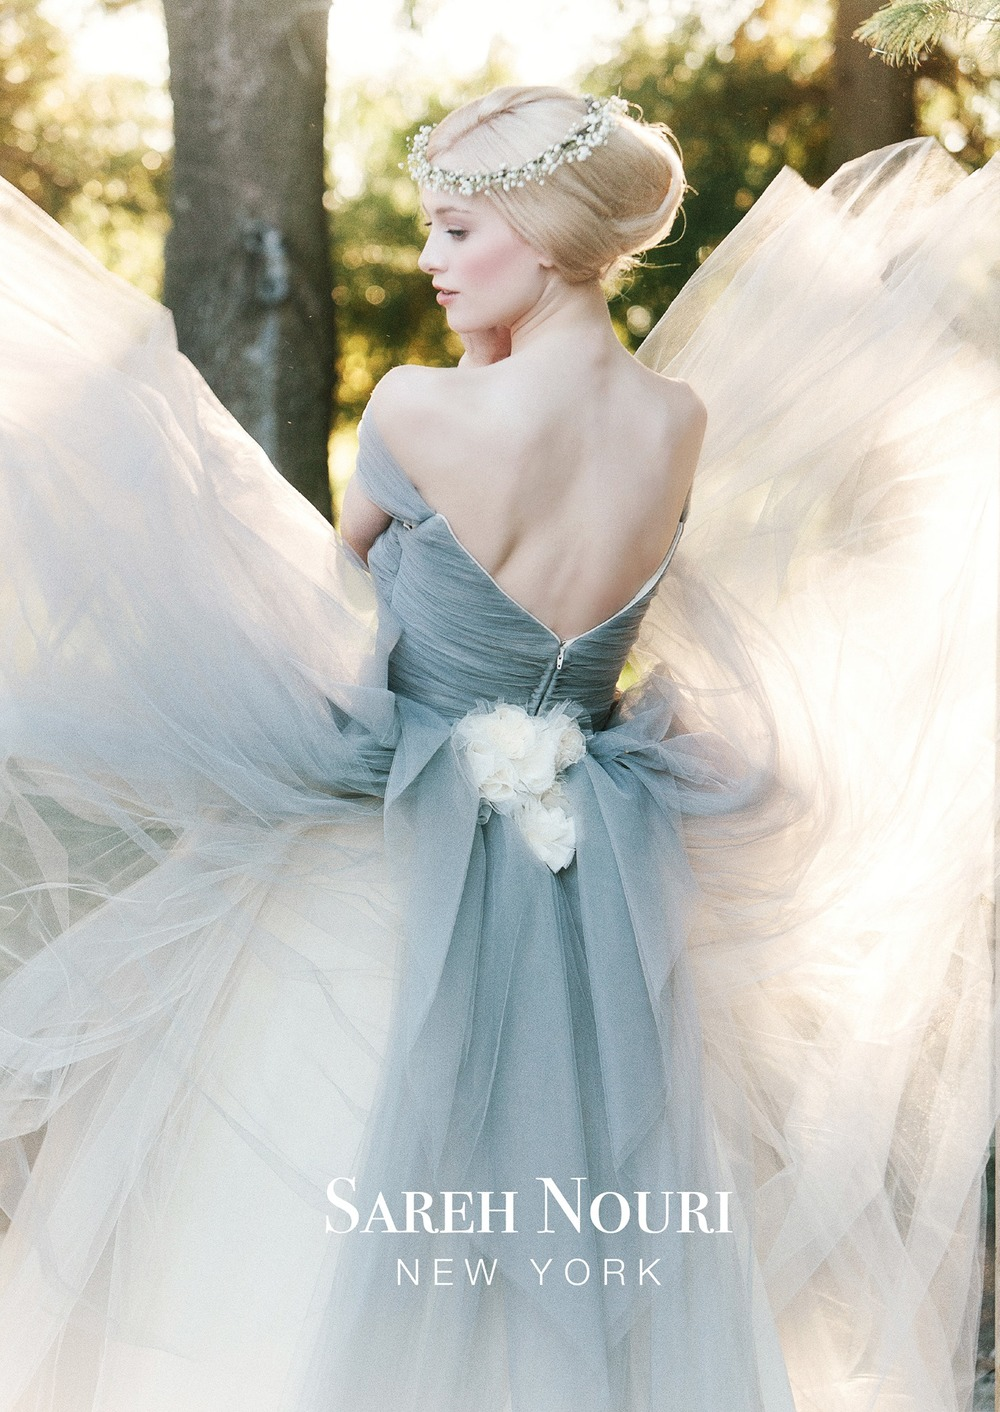 Sareh nouri bridal fall 2014 collection marie antoinette simply